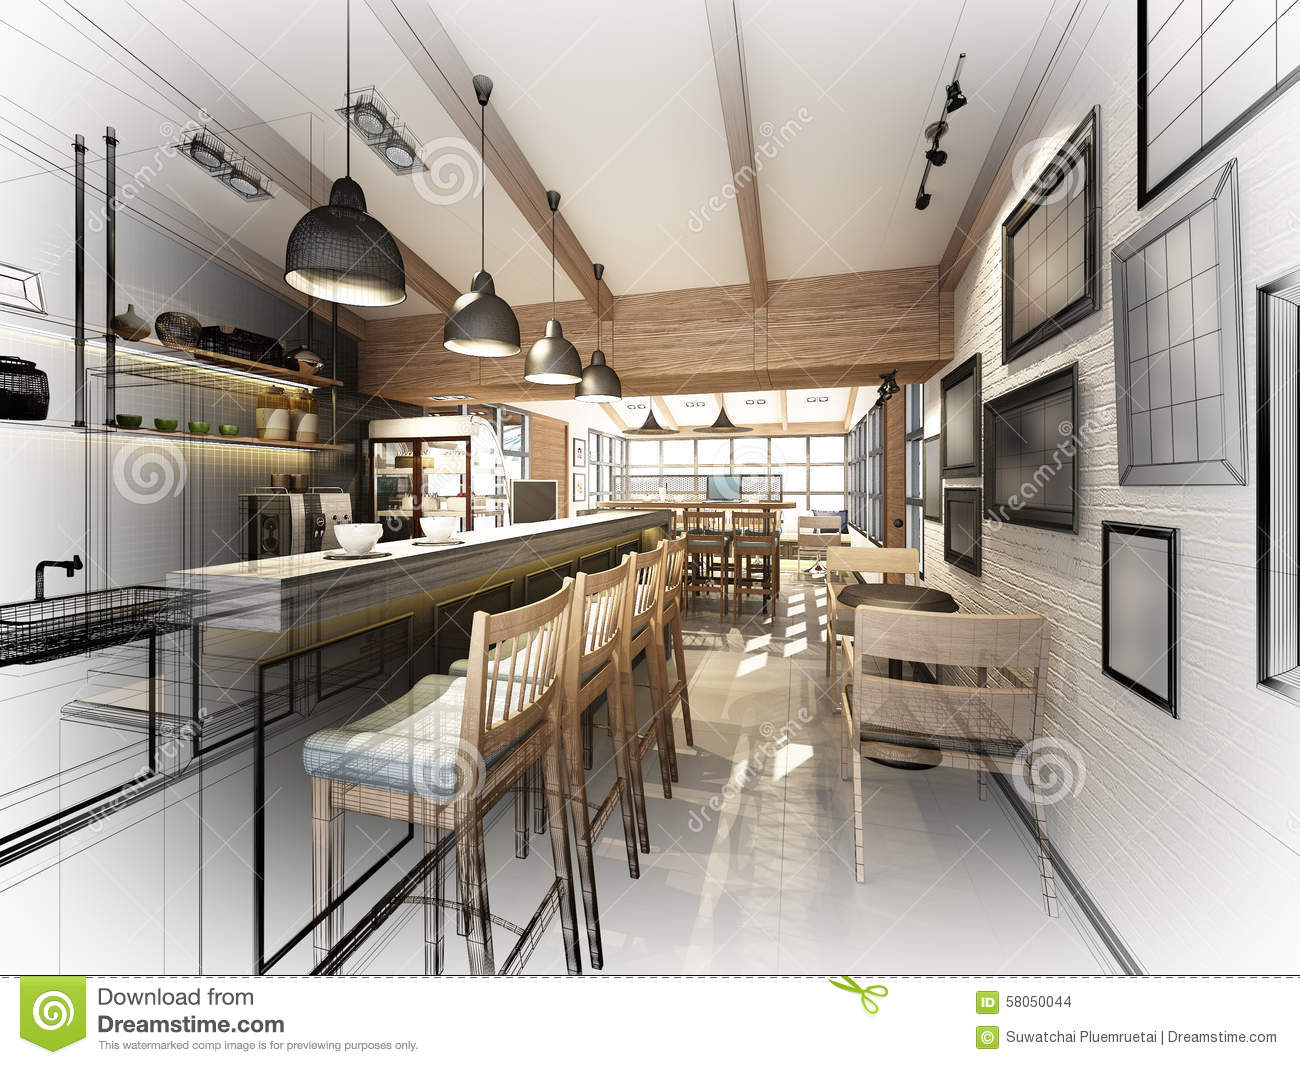 Sketch Design Of Coffee Shop Stock Illustration - Illustration Of Home 3dwire 58050044